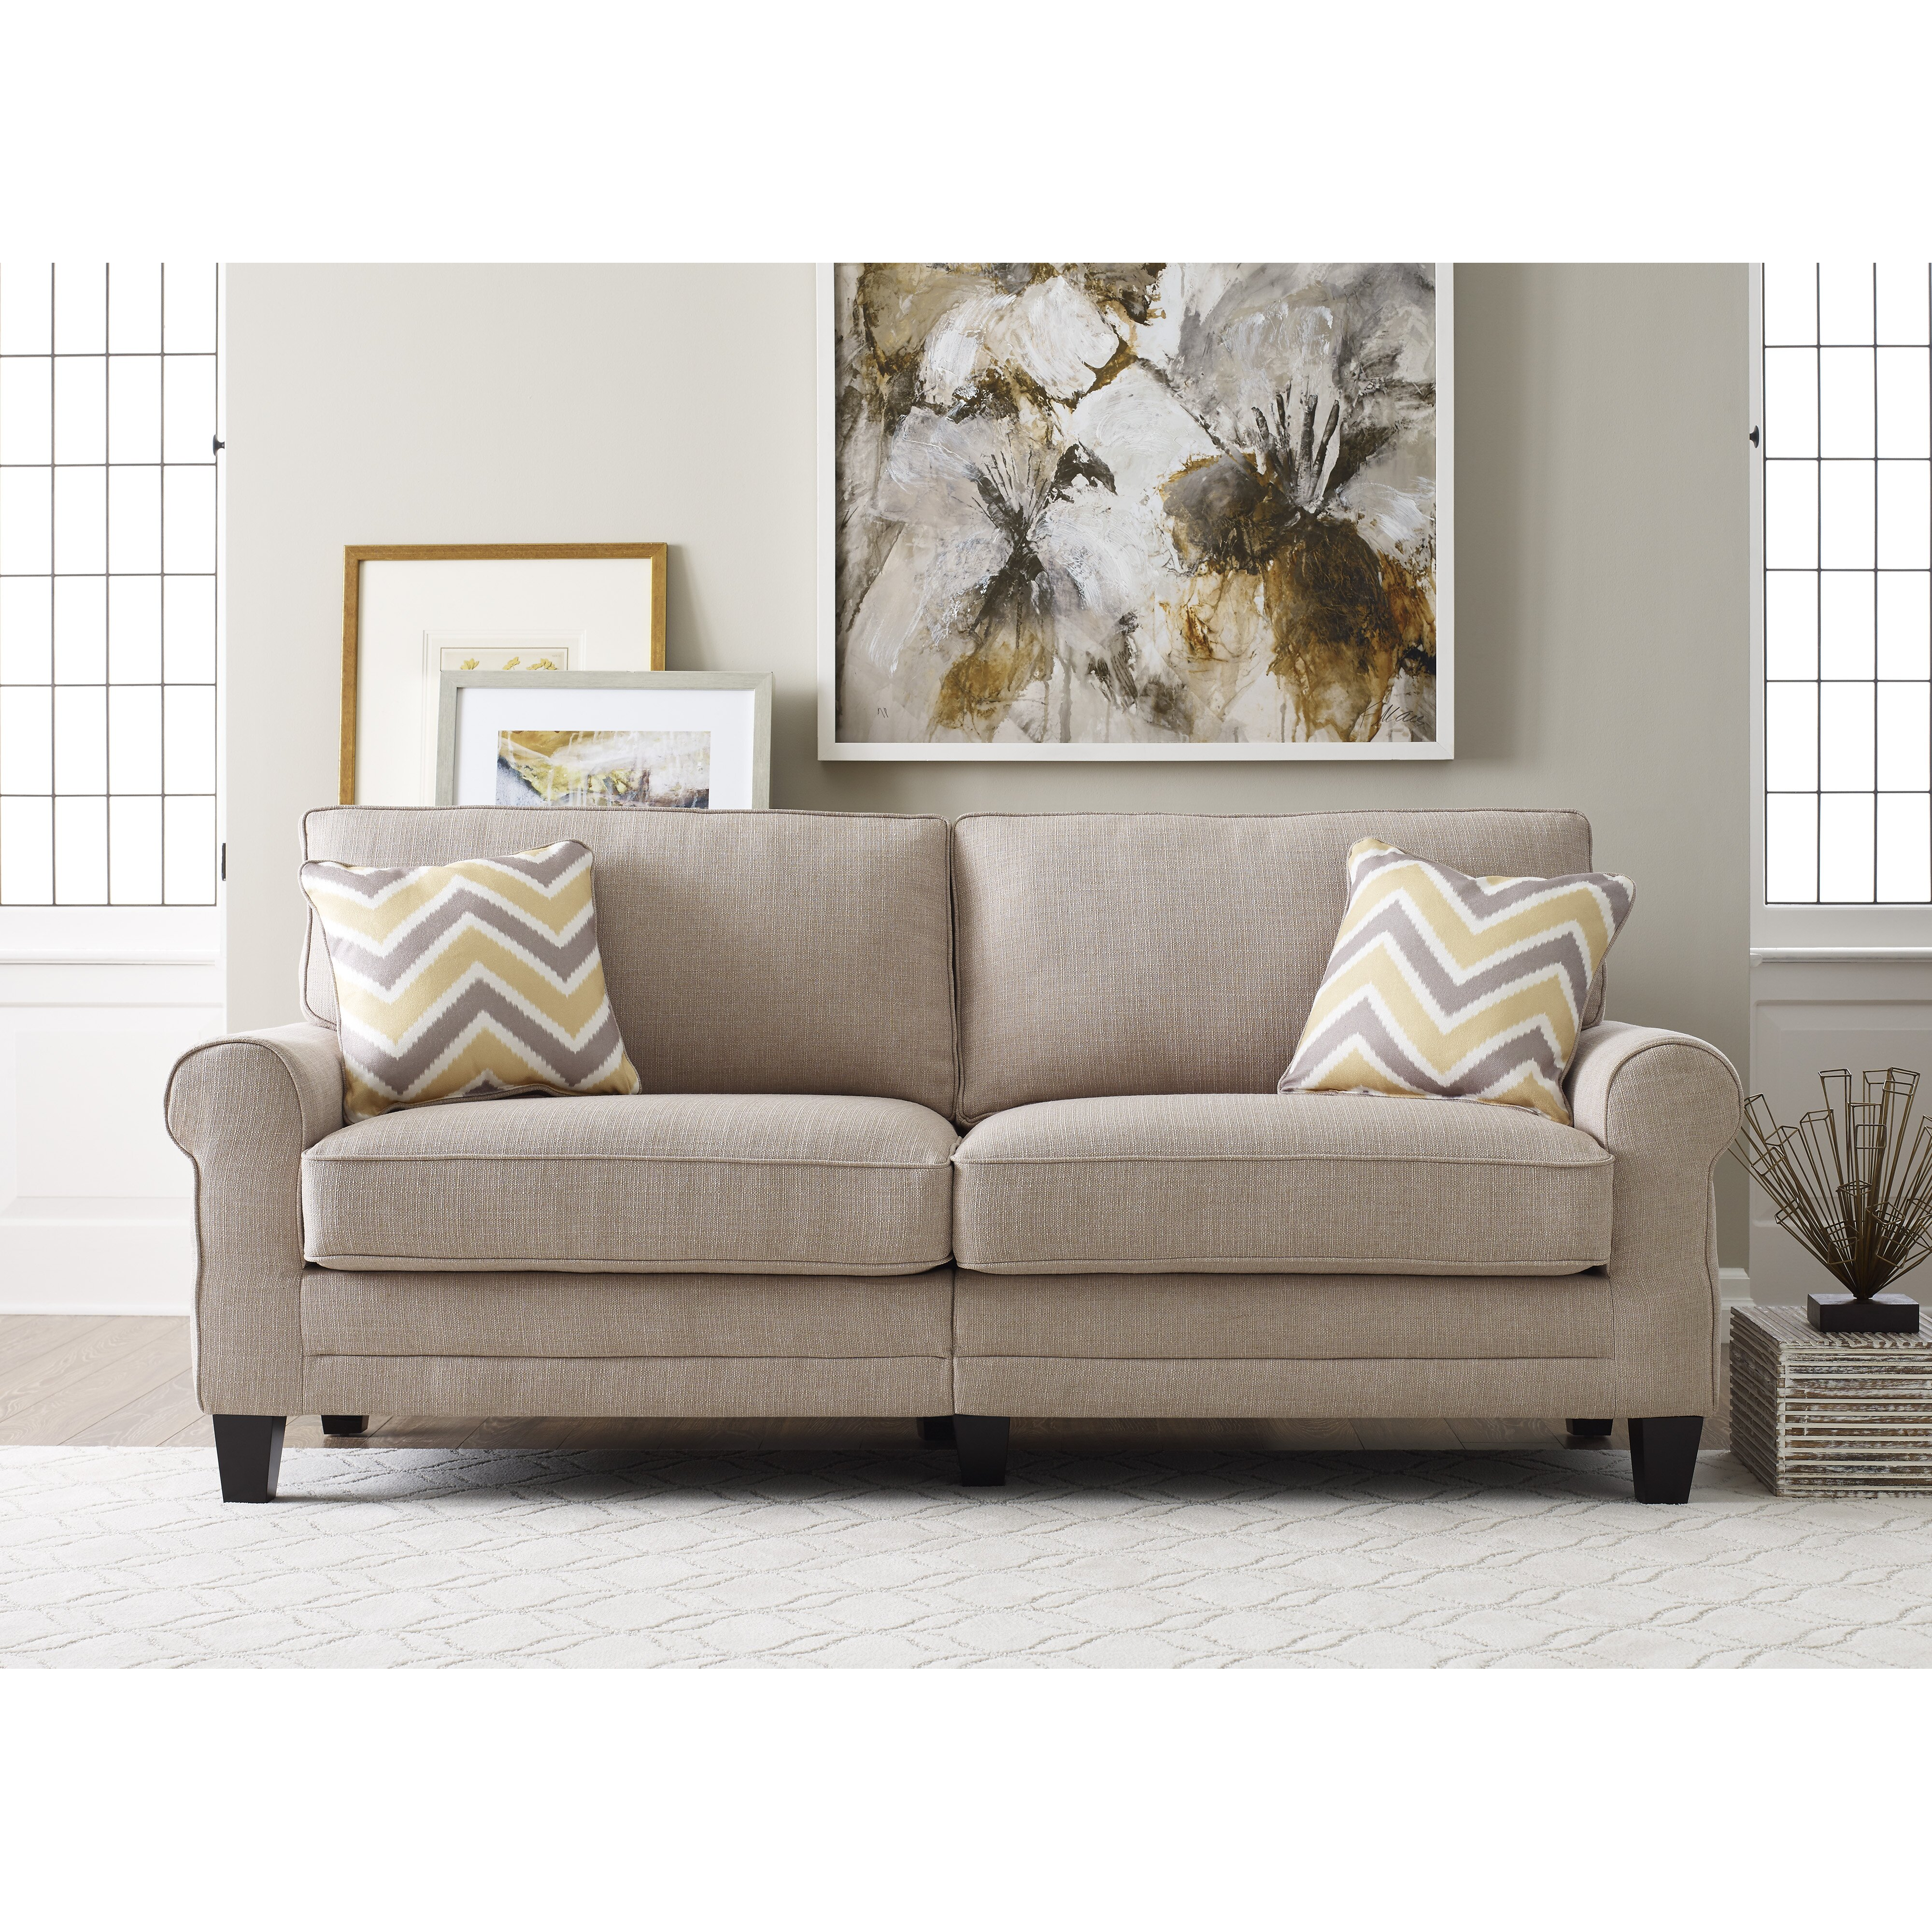 Serta At Home Serta Rta Copenhagen Sofa Reviews Wayfair Supply